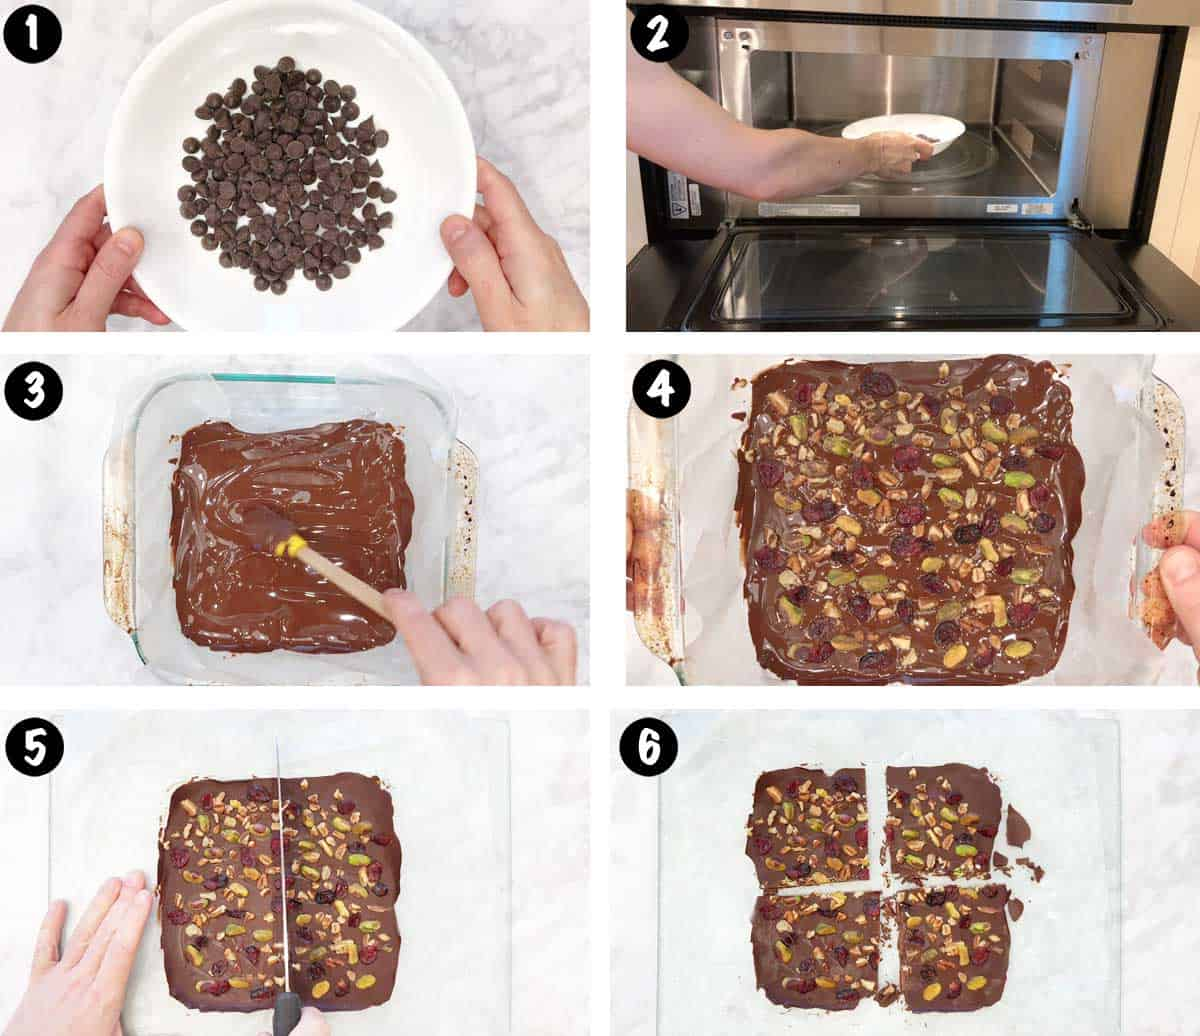 A photo collage showing the steps for making chocolate bark.